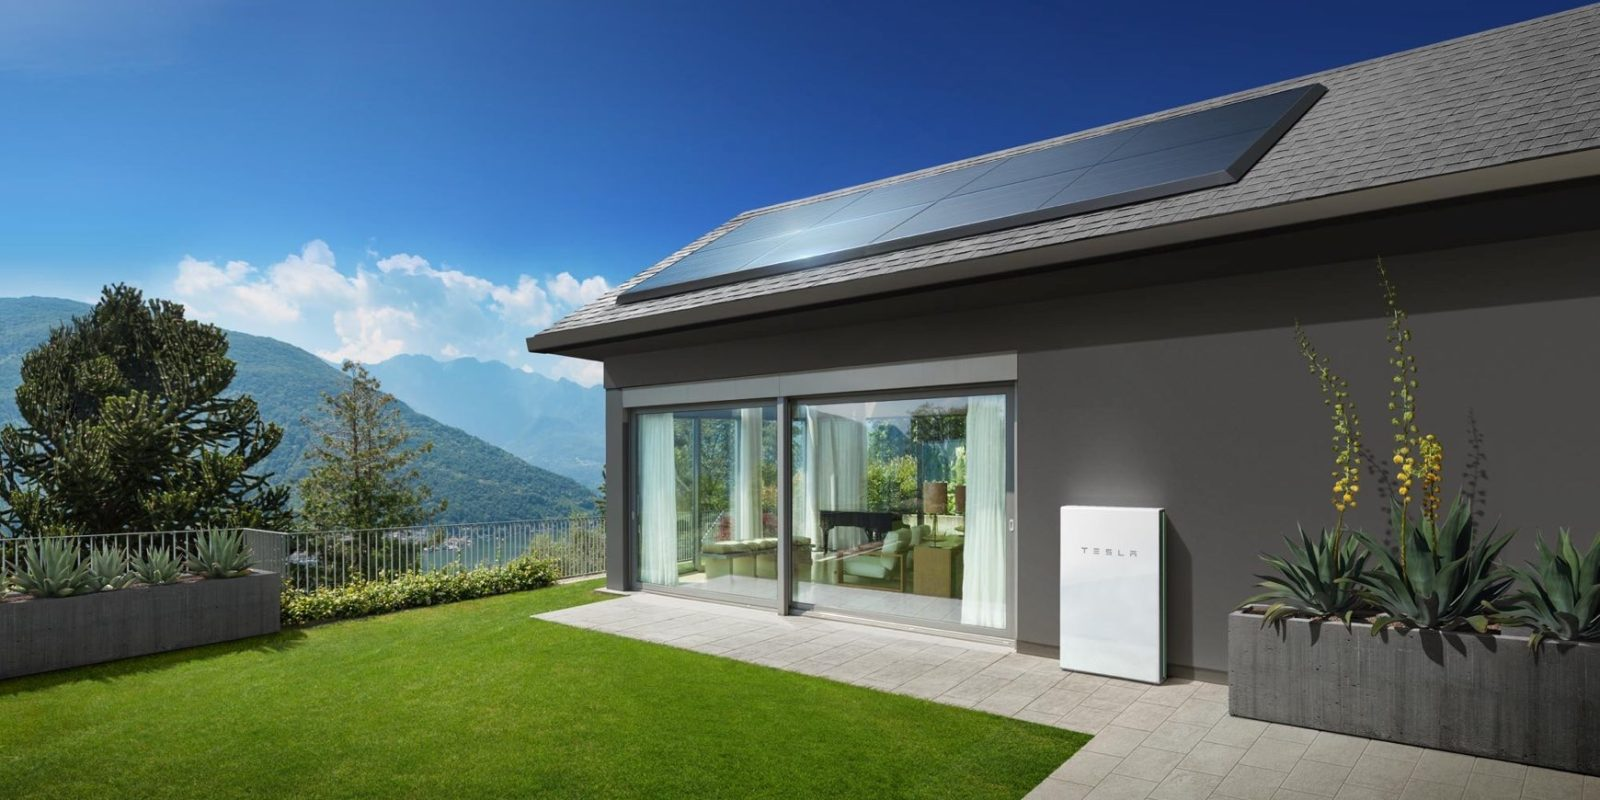 Tesla launches solar rental service, can get a solar panel system for $50 per month